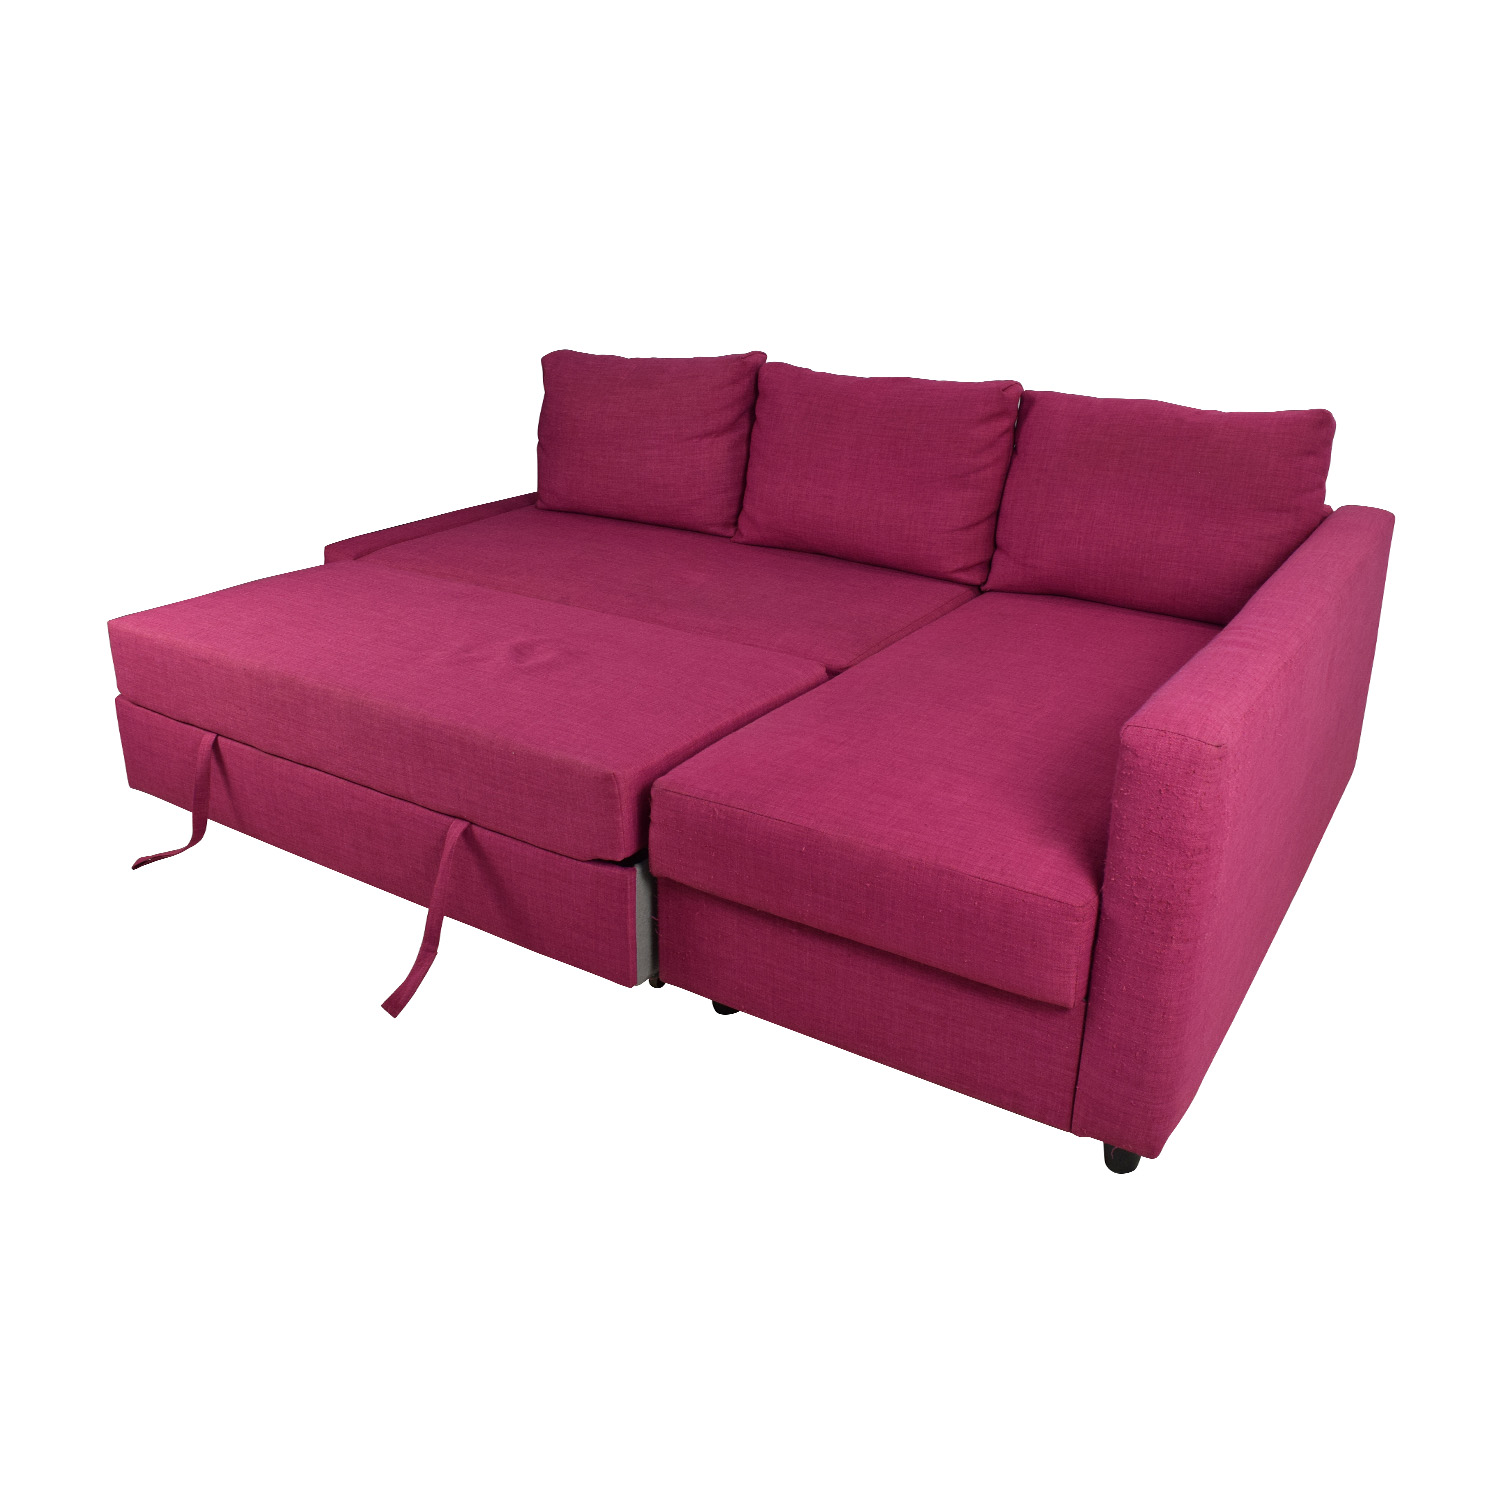 66 off ikea ikea friheten pink sleeper sofa sofas. Black Bedroom Furniture Sets. Home Design Ideas